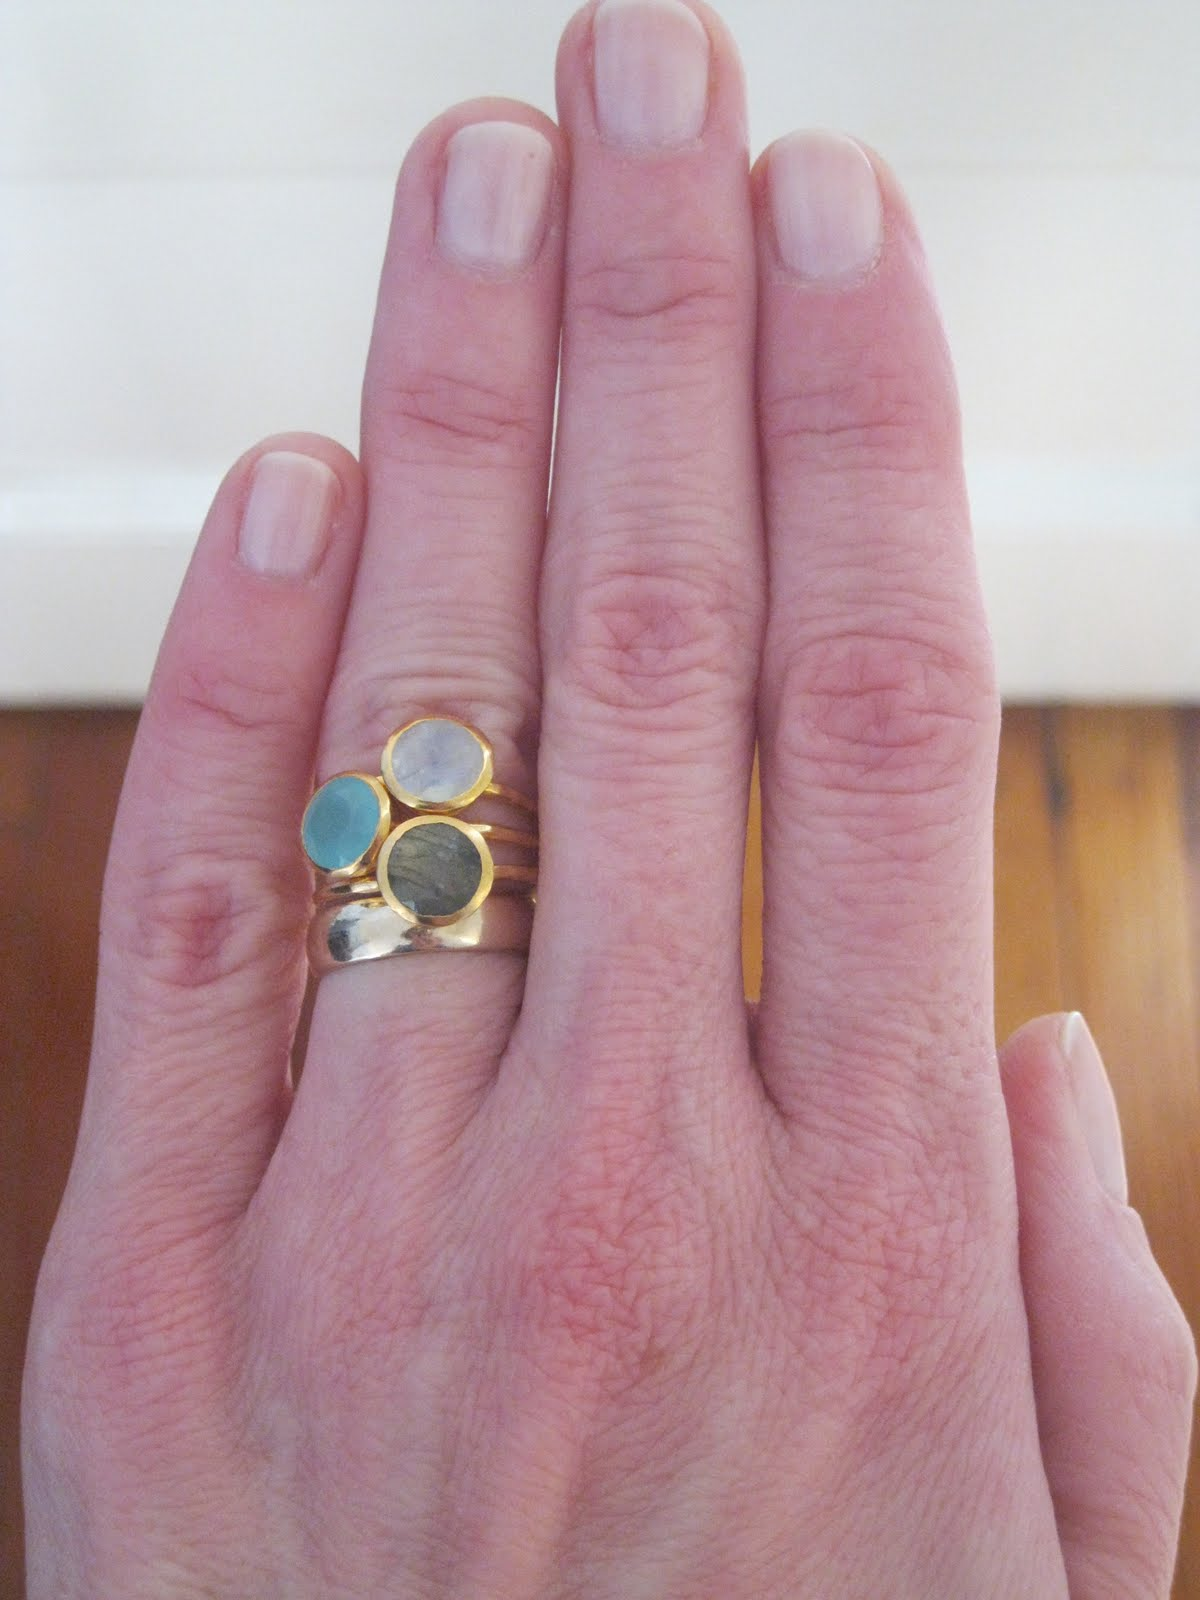 Everything Just So: Julie Collection Corsica Rings (Or, How I Spent ...